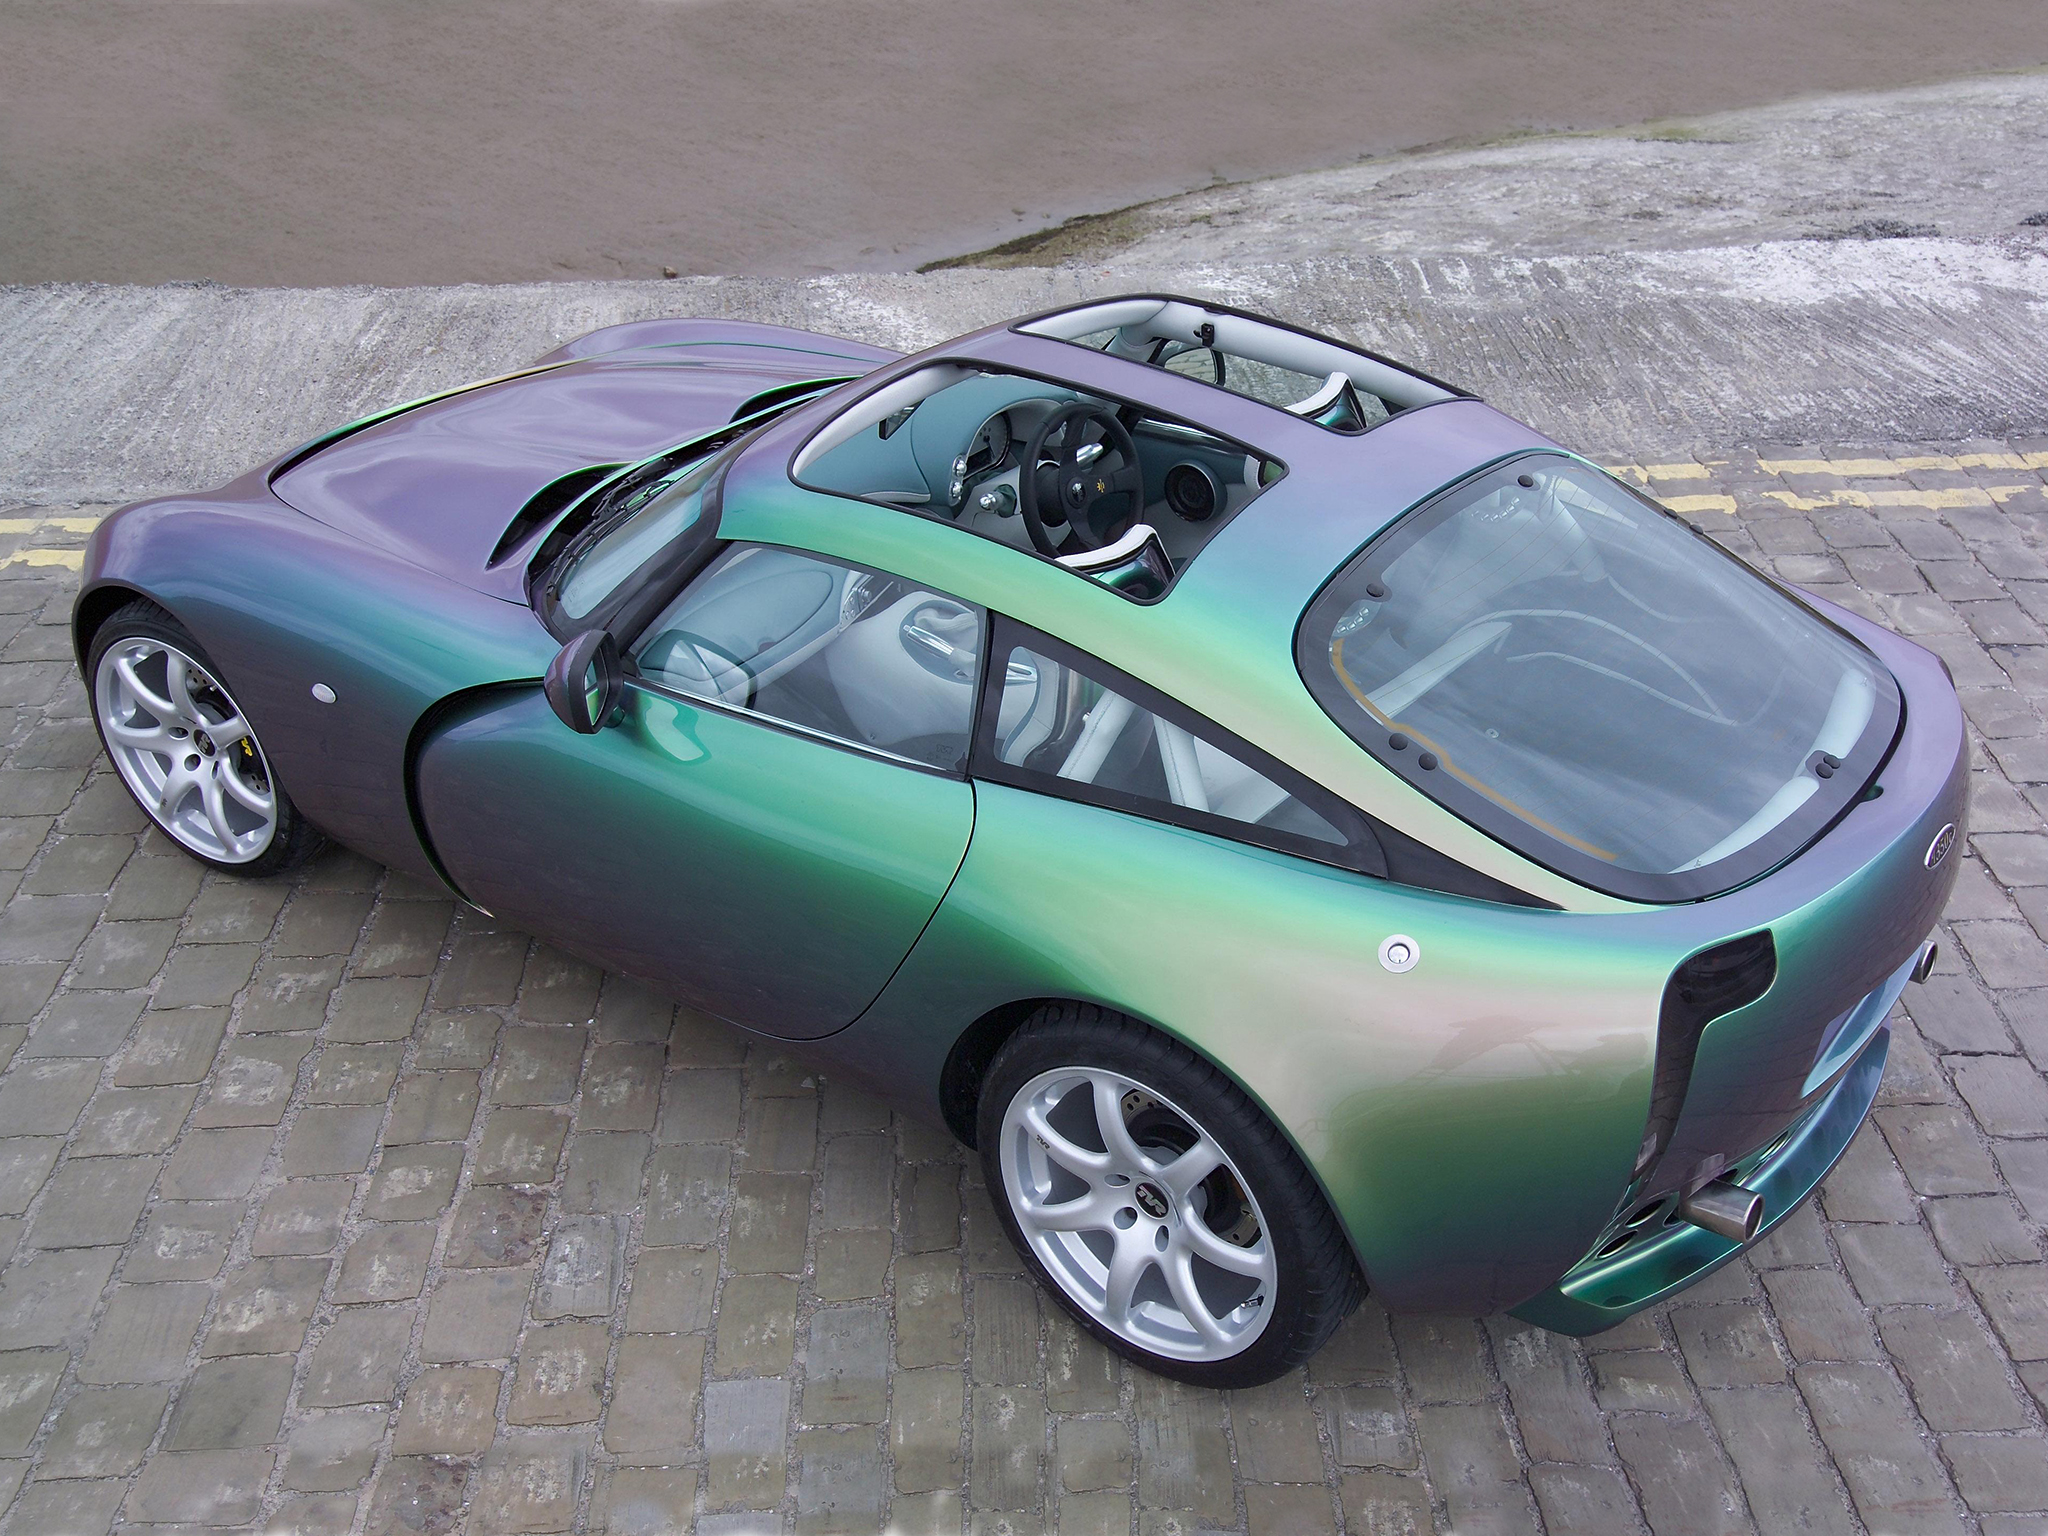 tvr_t350t